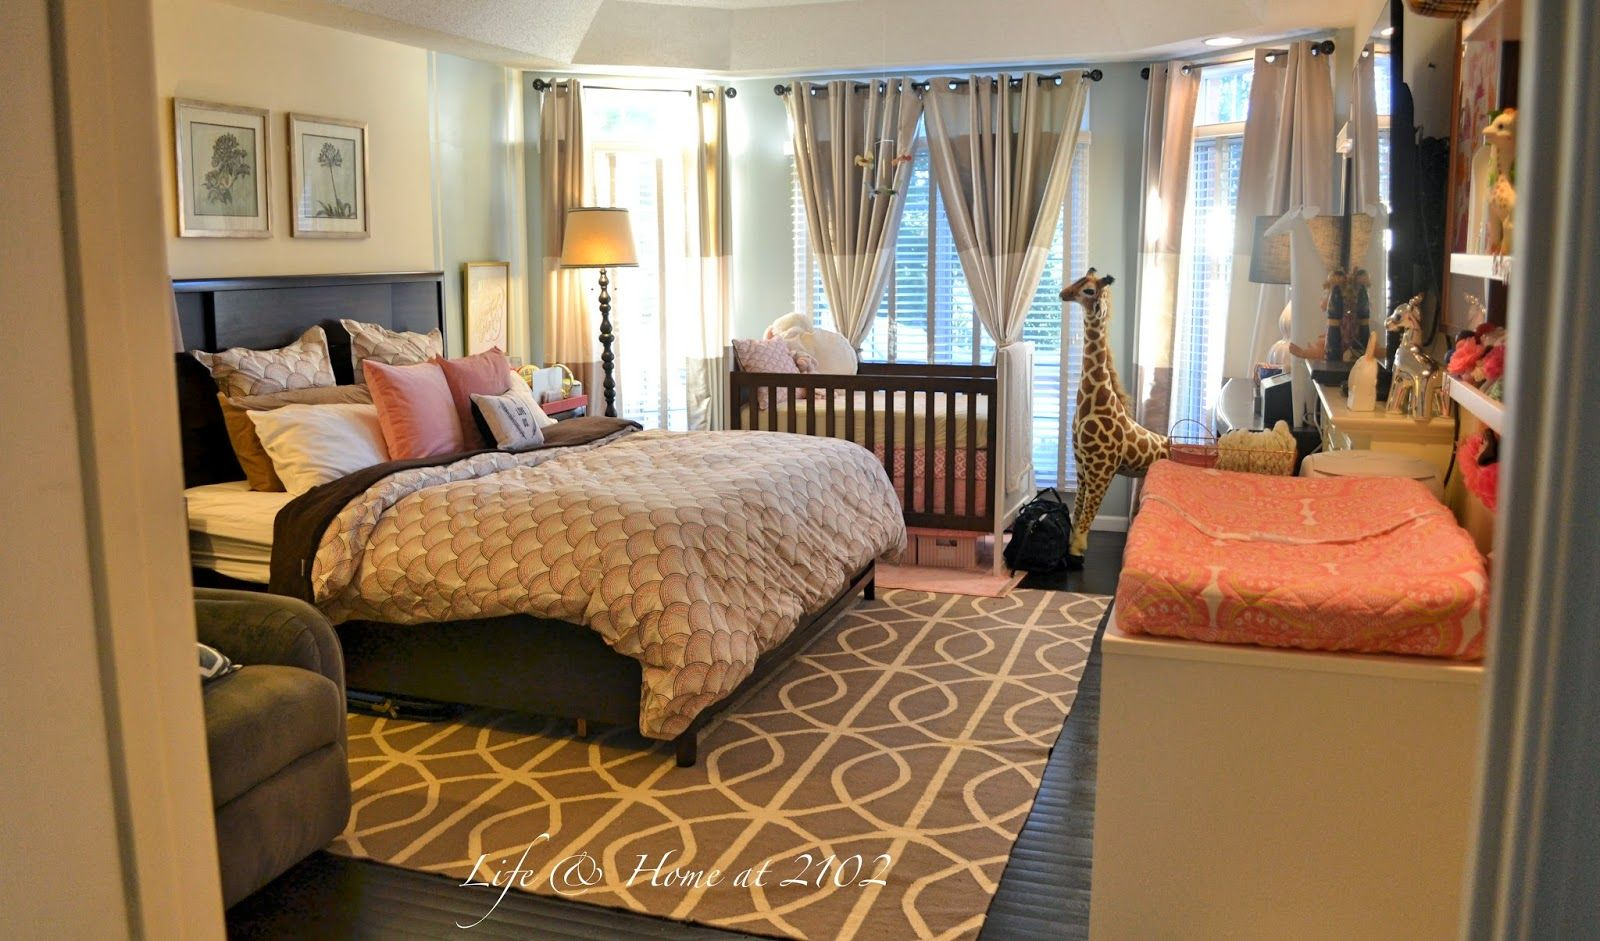 Life home at 2102 master bedroom with nursery reveal for Ideas for your room